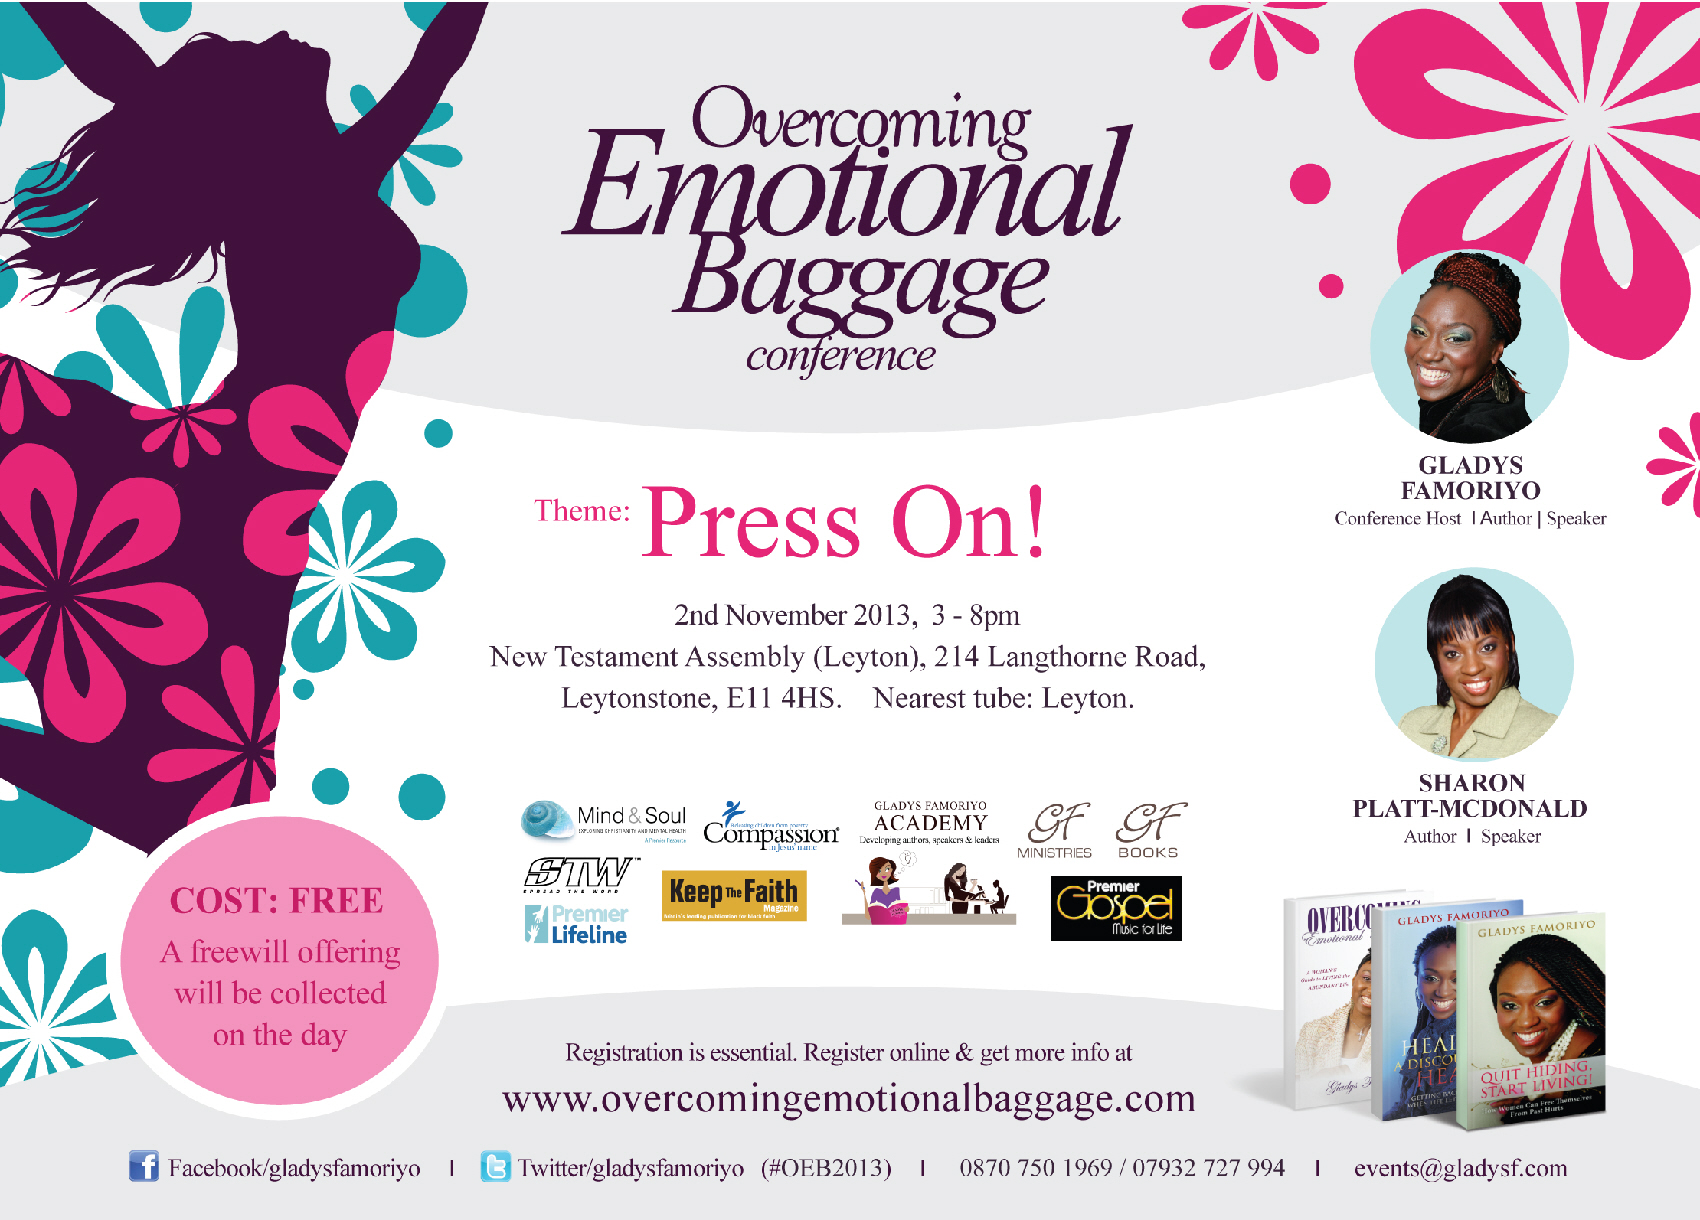 Overcoming Emotional Baggage 2013 Gladys Famoriyo